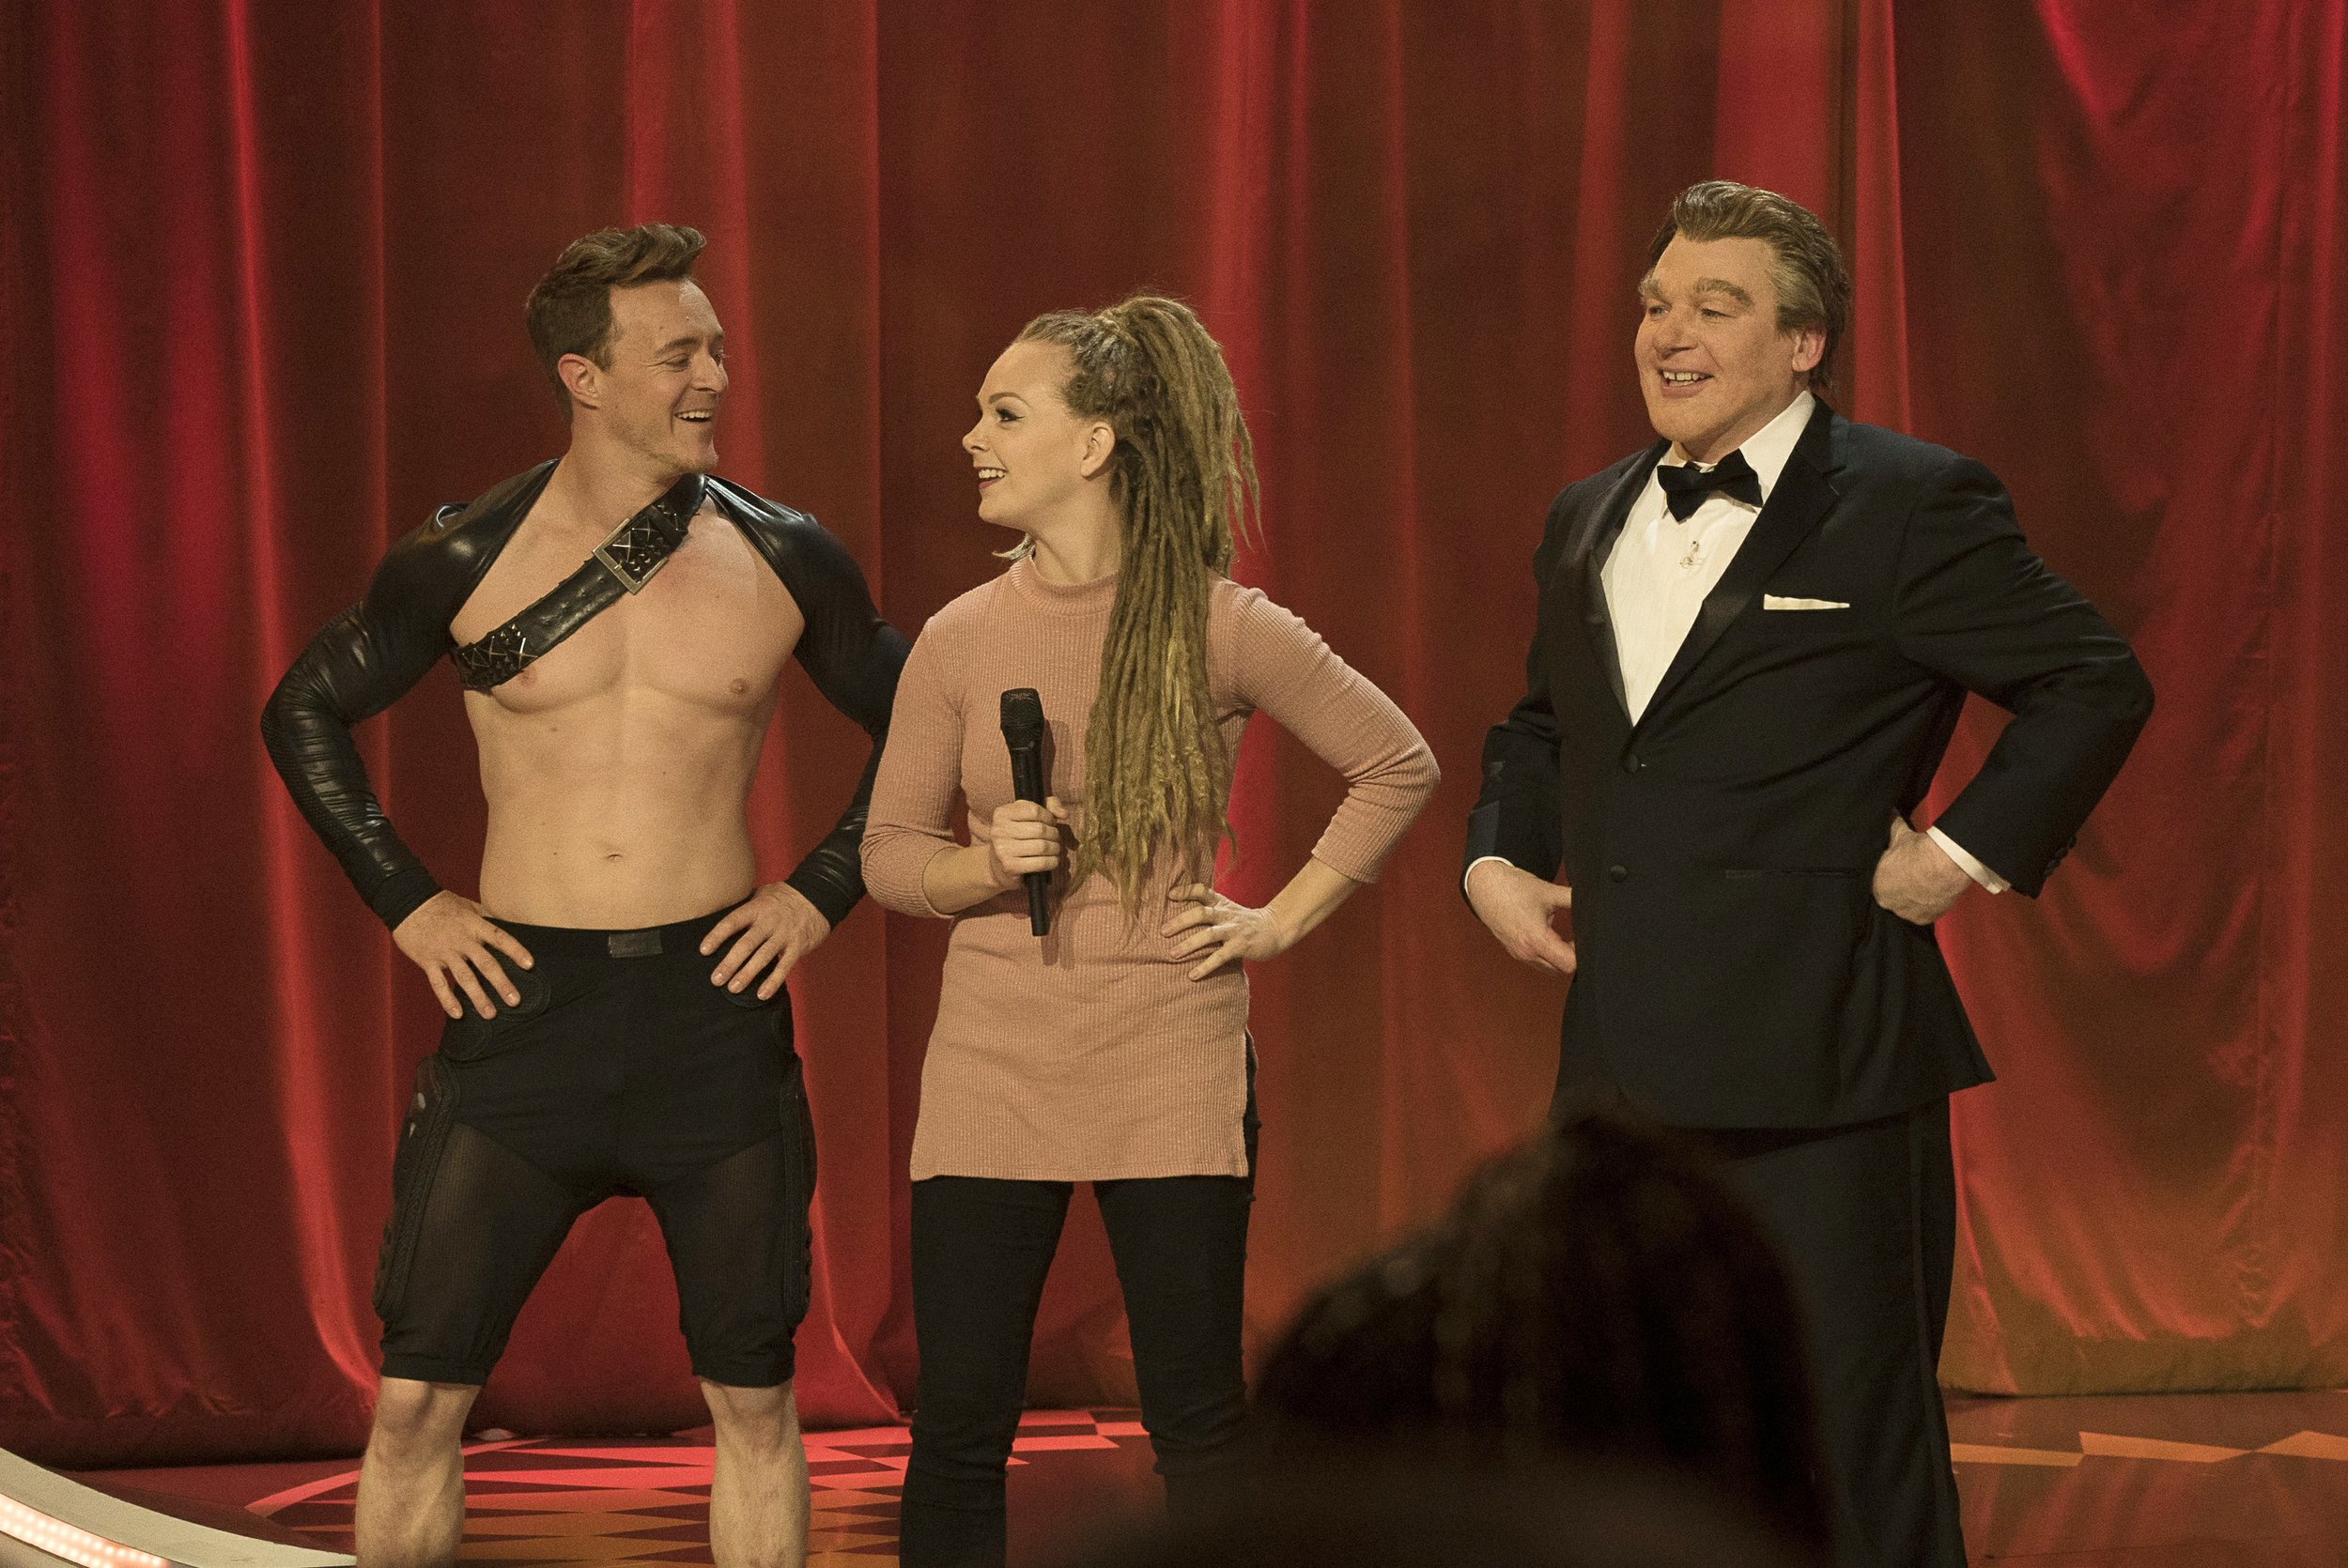 Rocco and Nova (co-owners of Gravity) with Mike Myers (Austin Powers, SNL, Shrek) on the Gong Show